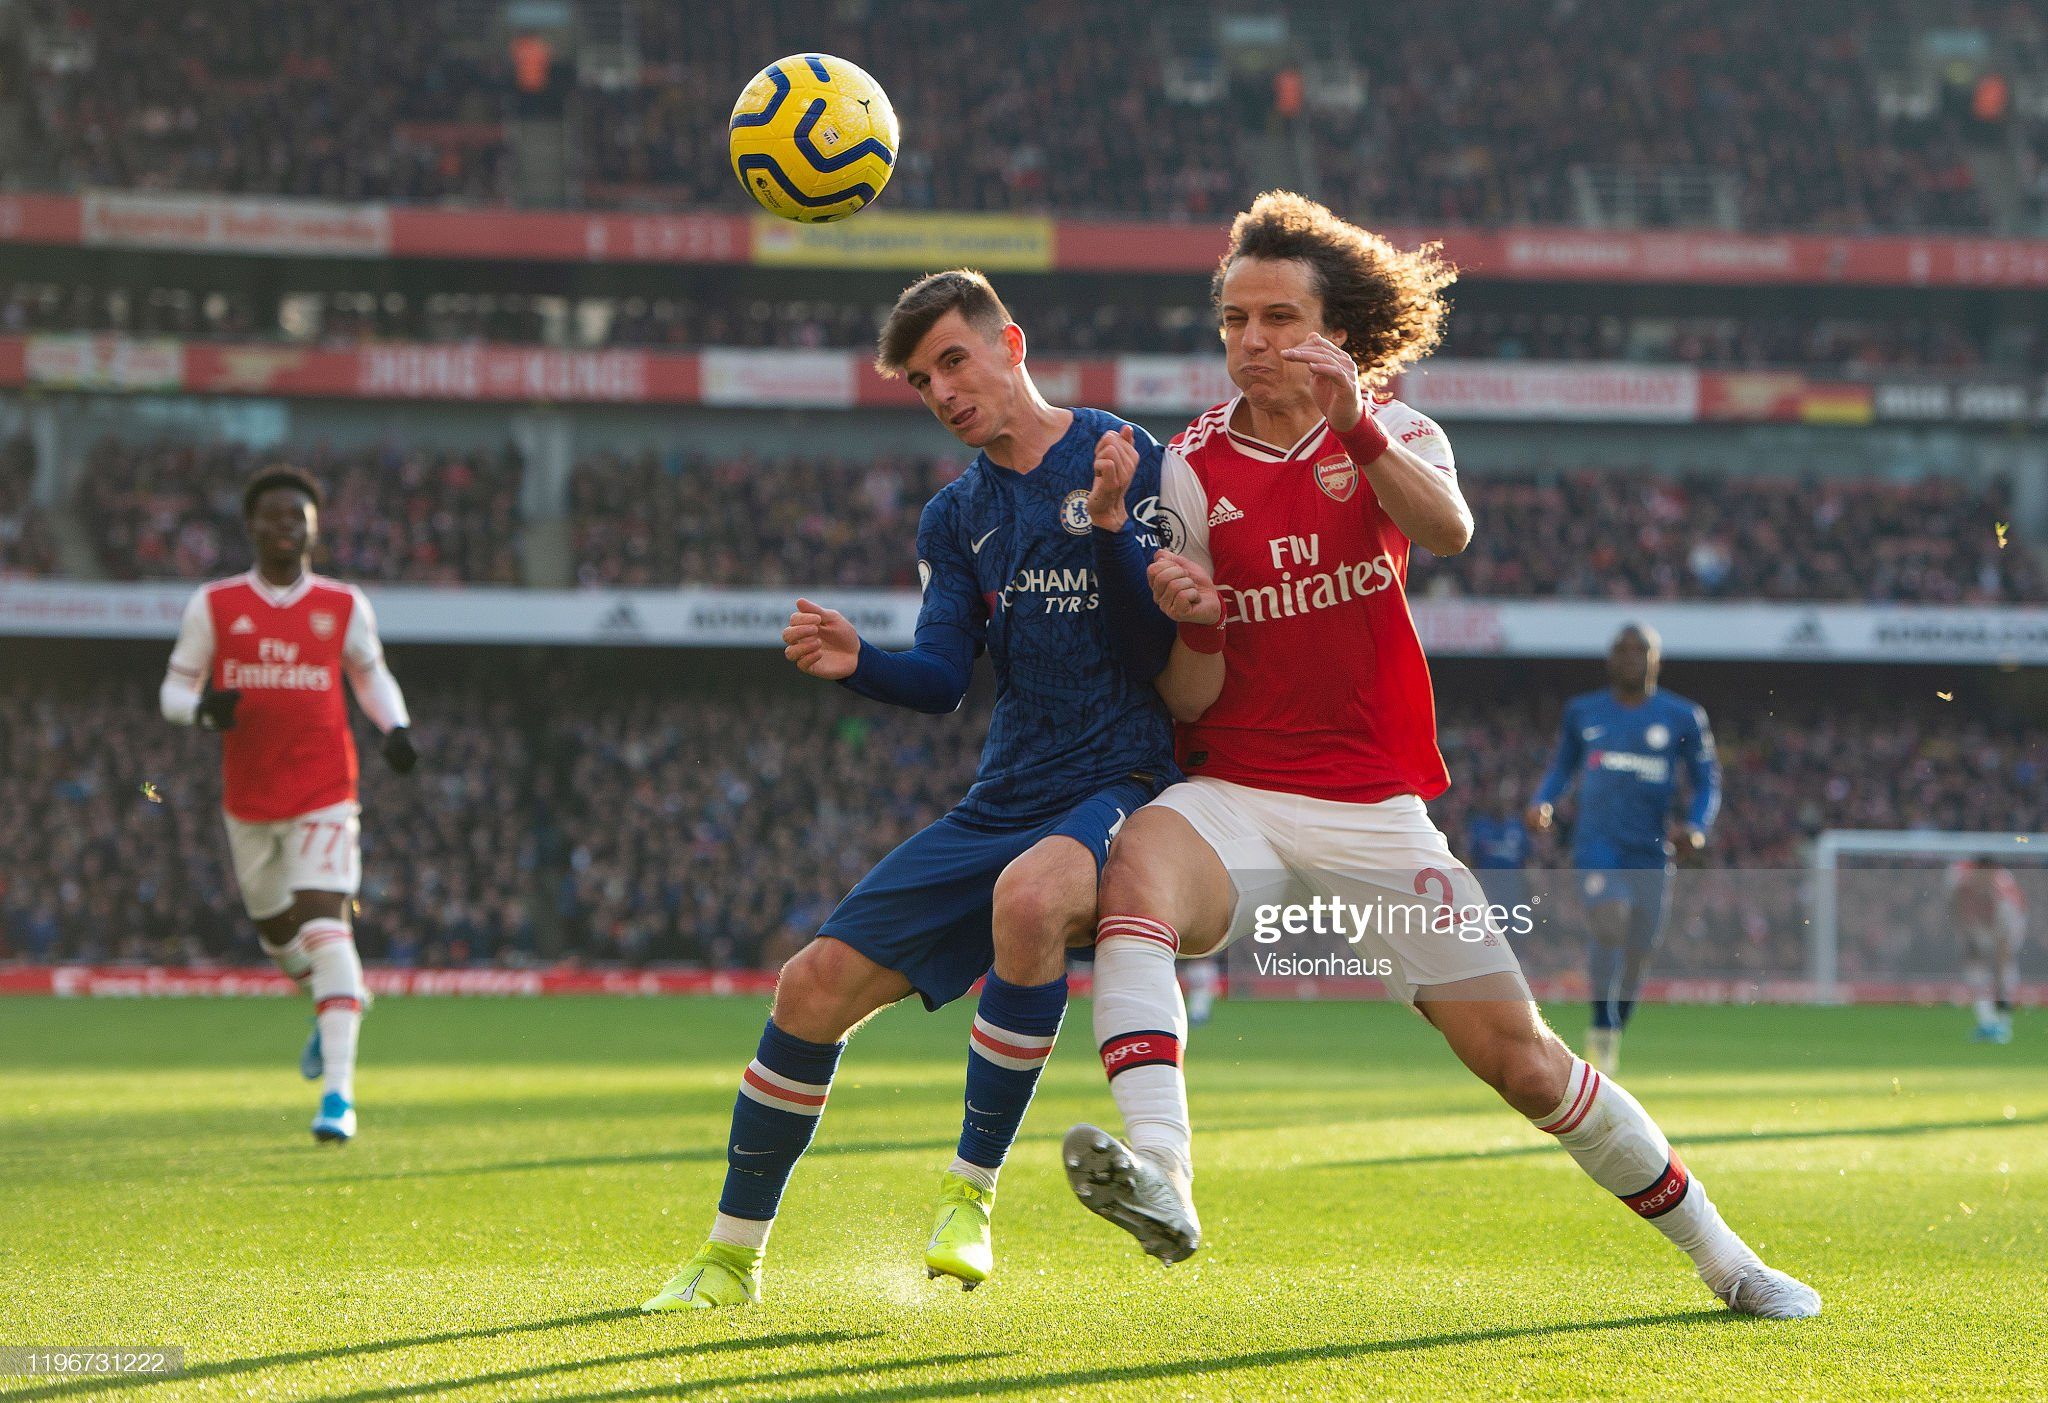 Chelsea v Arsenal preview, prediction and odds